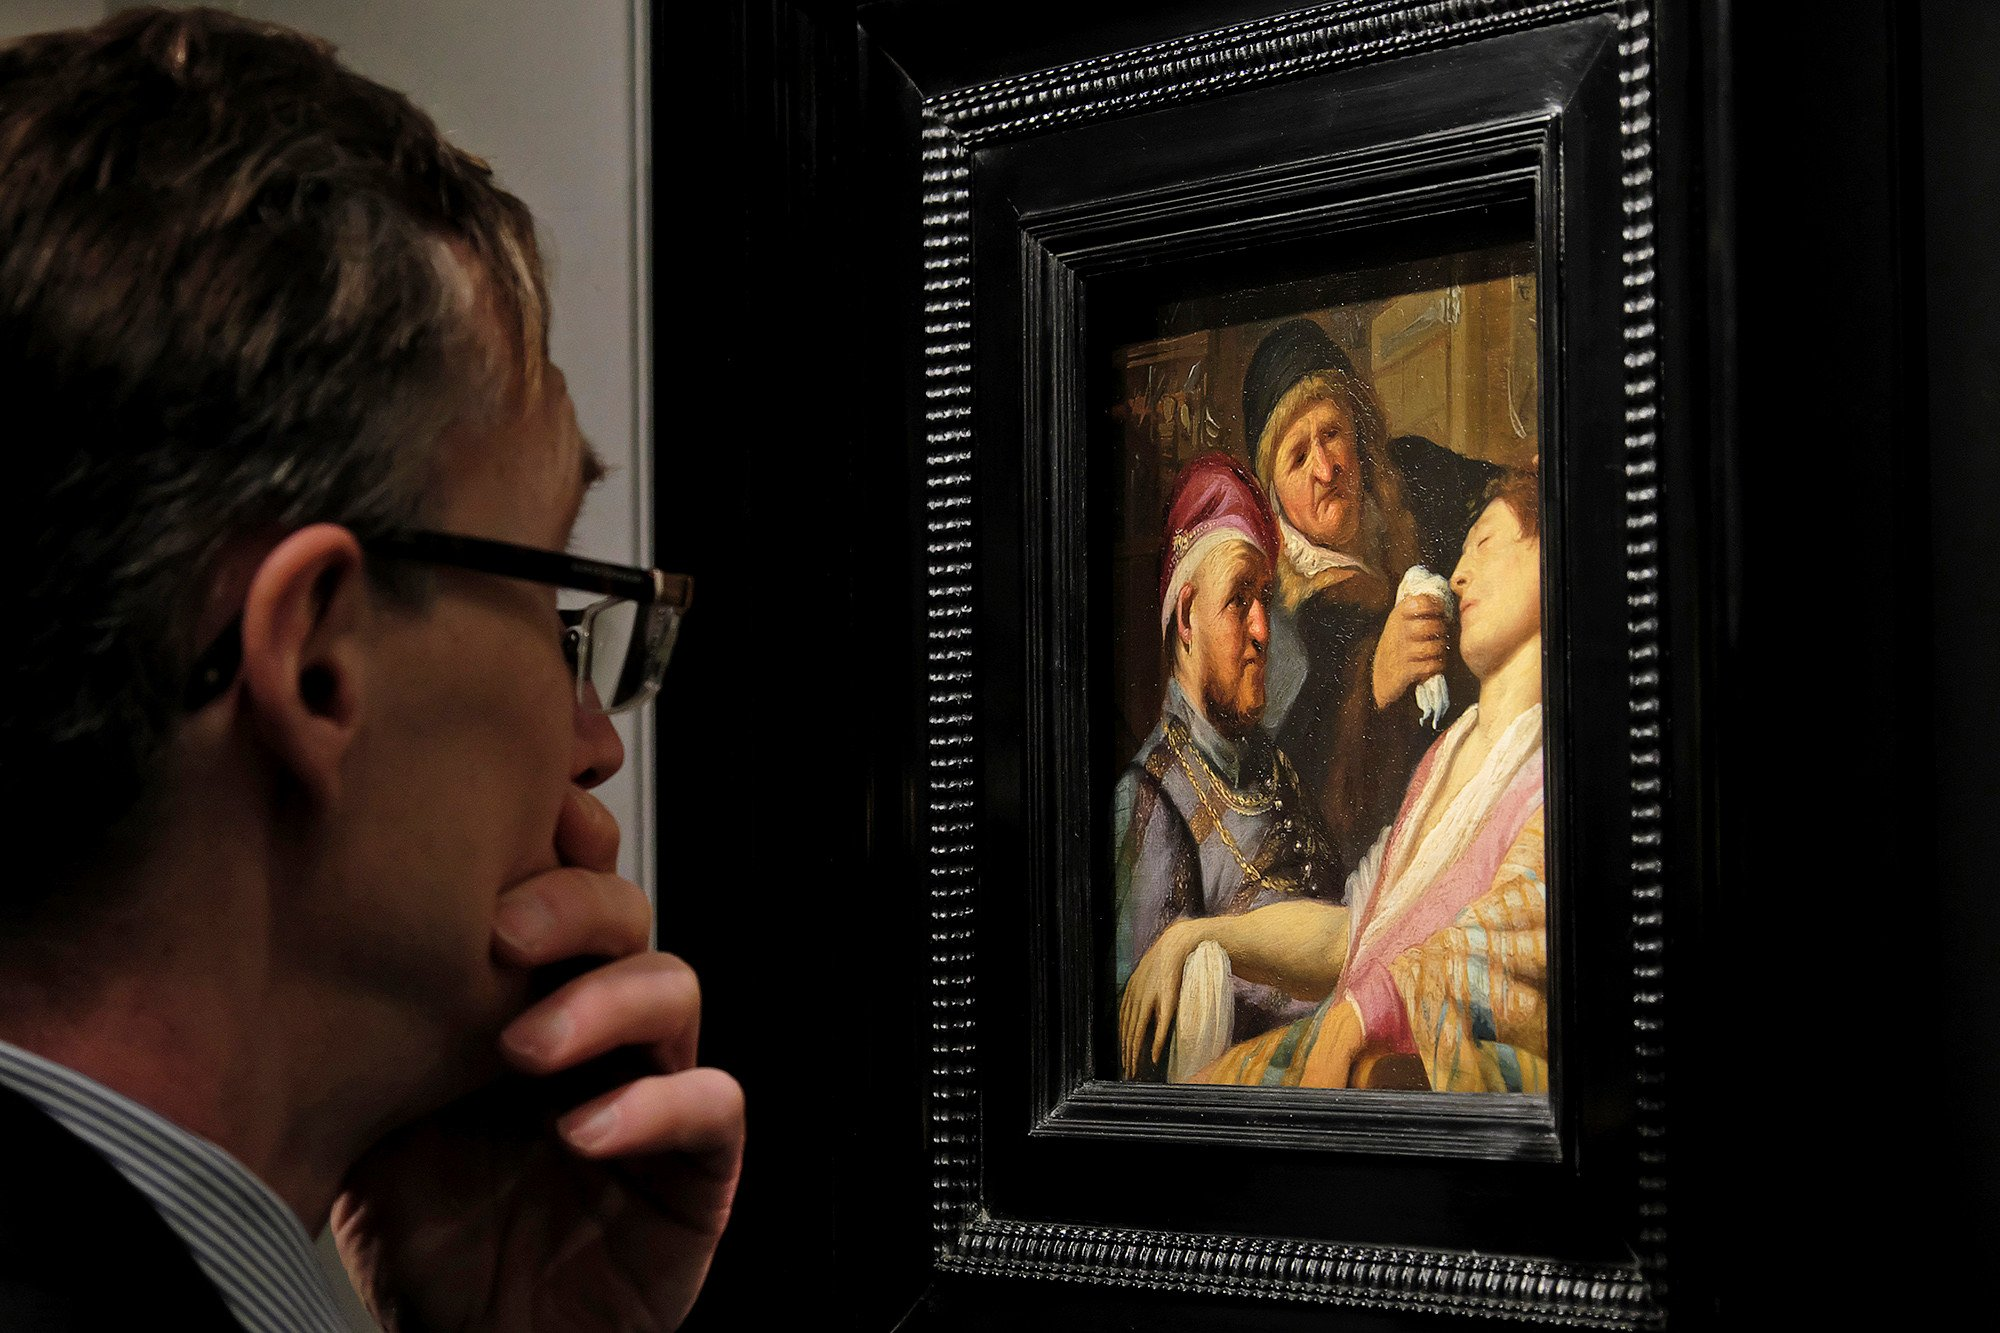 Rembrandt painting found in basement auctions for $1M